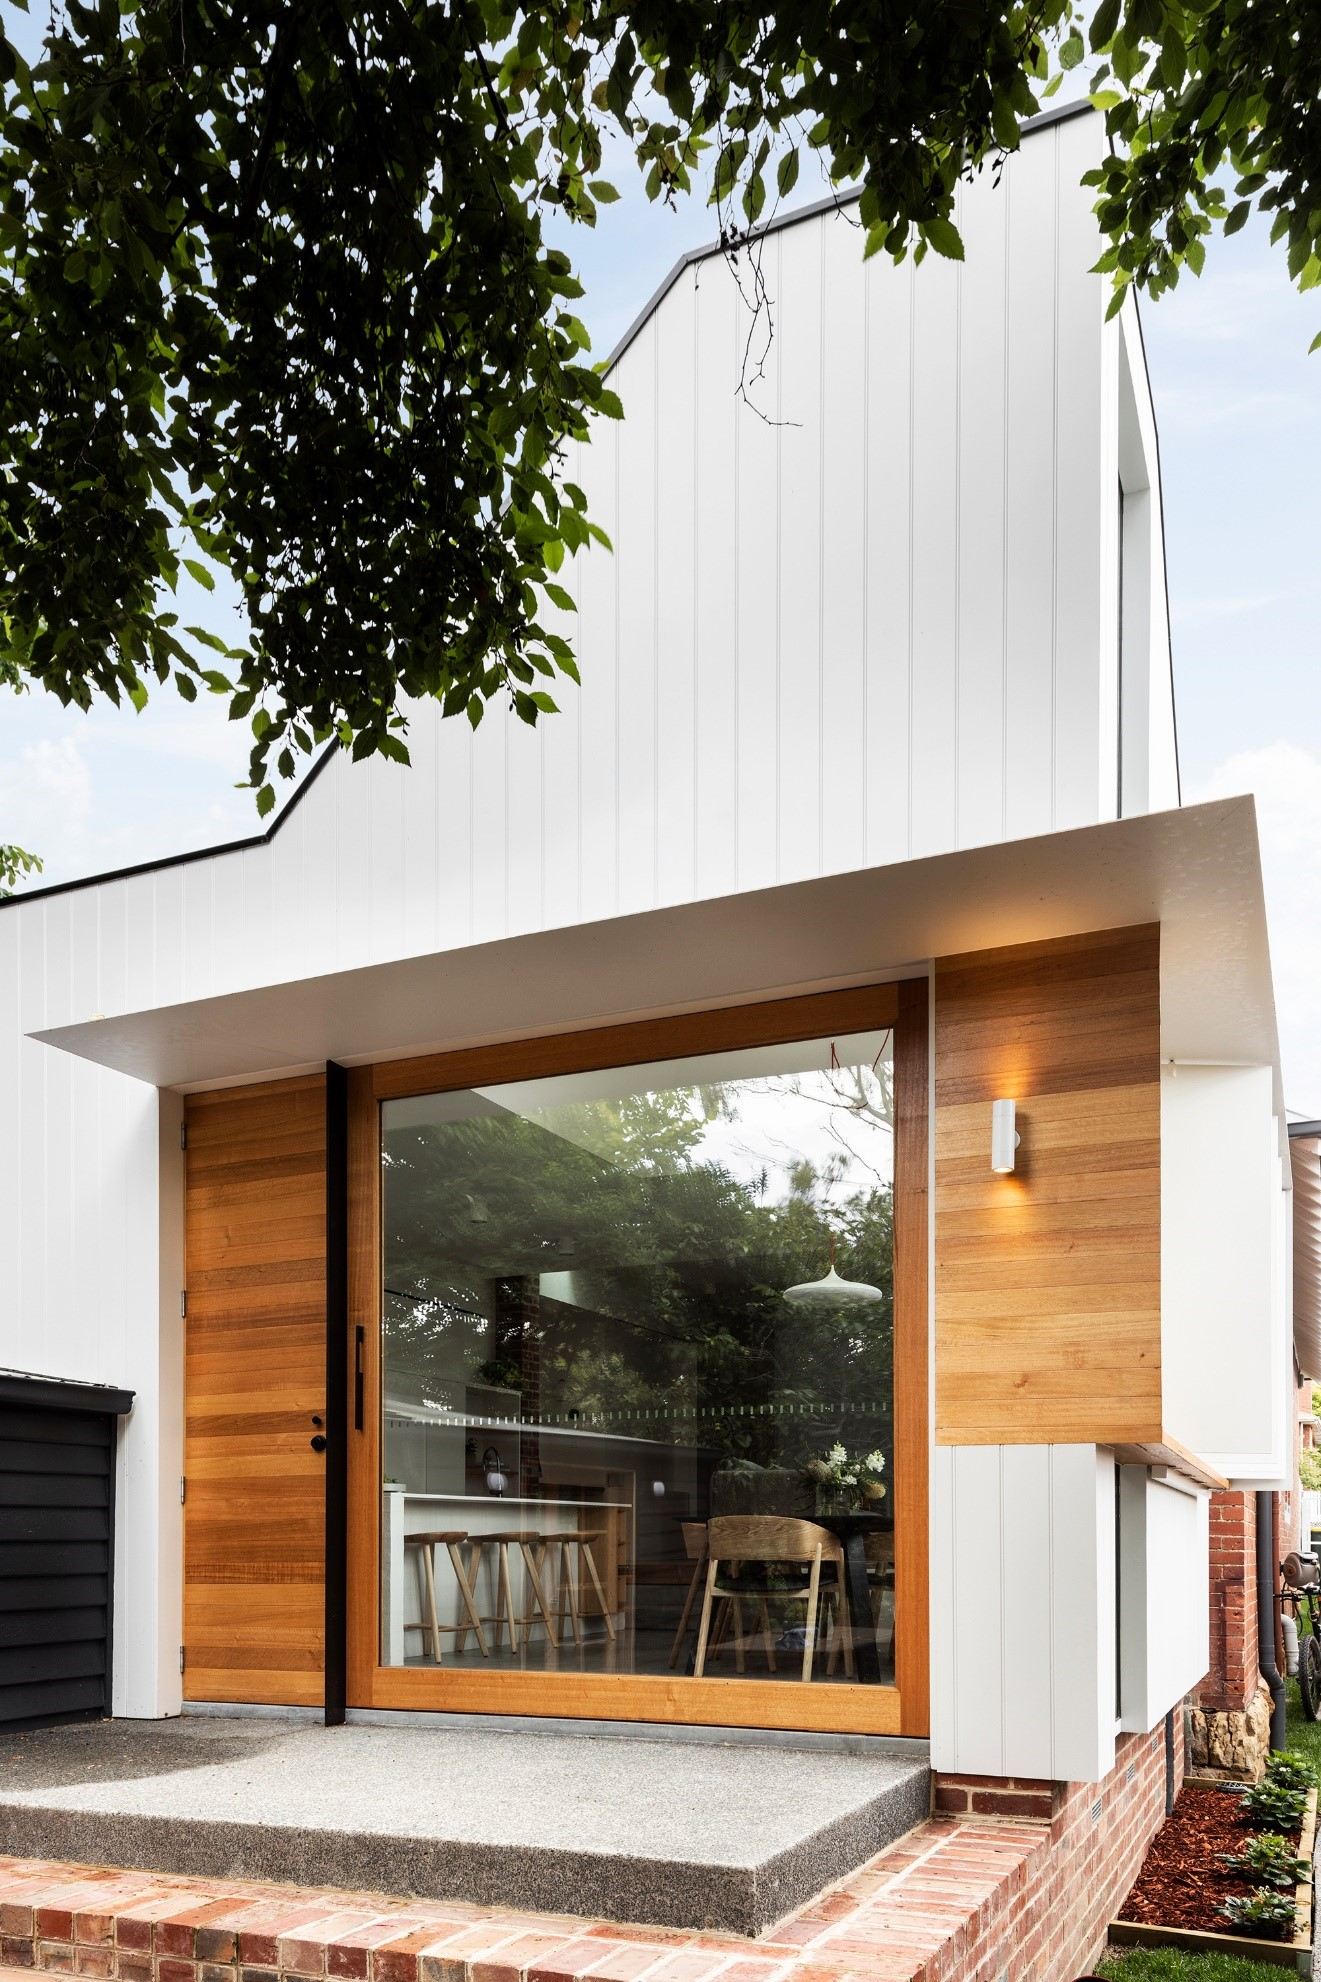 The Lansdowne Project By Preston Lane Architects Plays With Volume